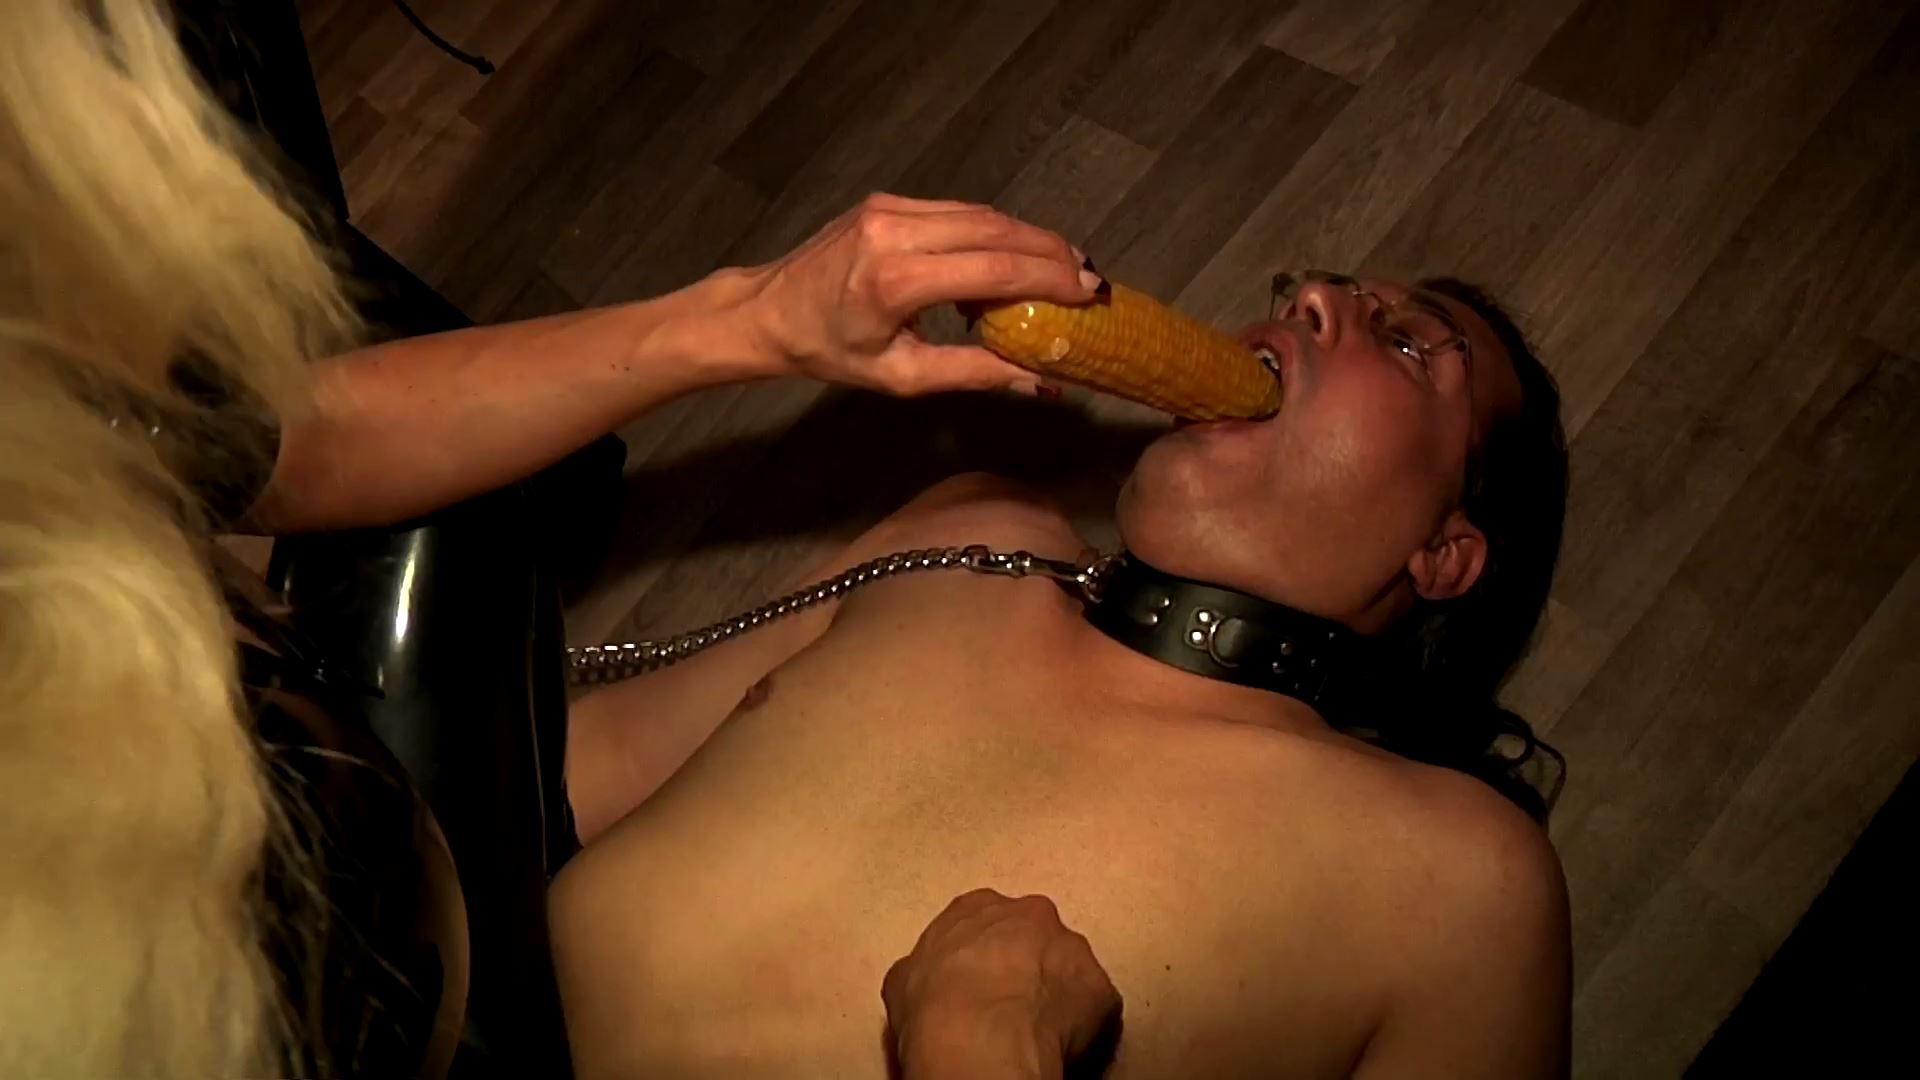 Lady Neva In Scene: Slave almost crushed - ERONITE-FEMDOM - FULL HD/1080p/MP4